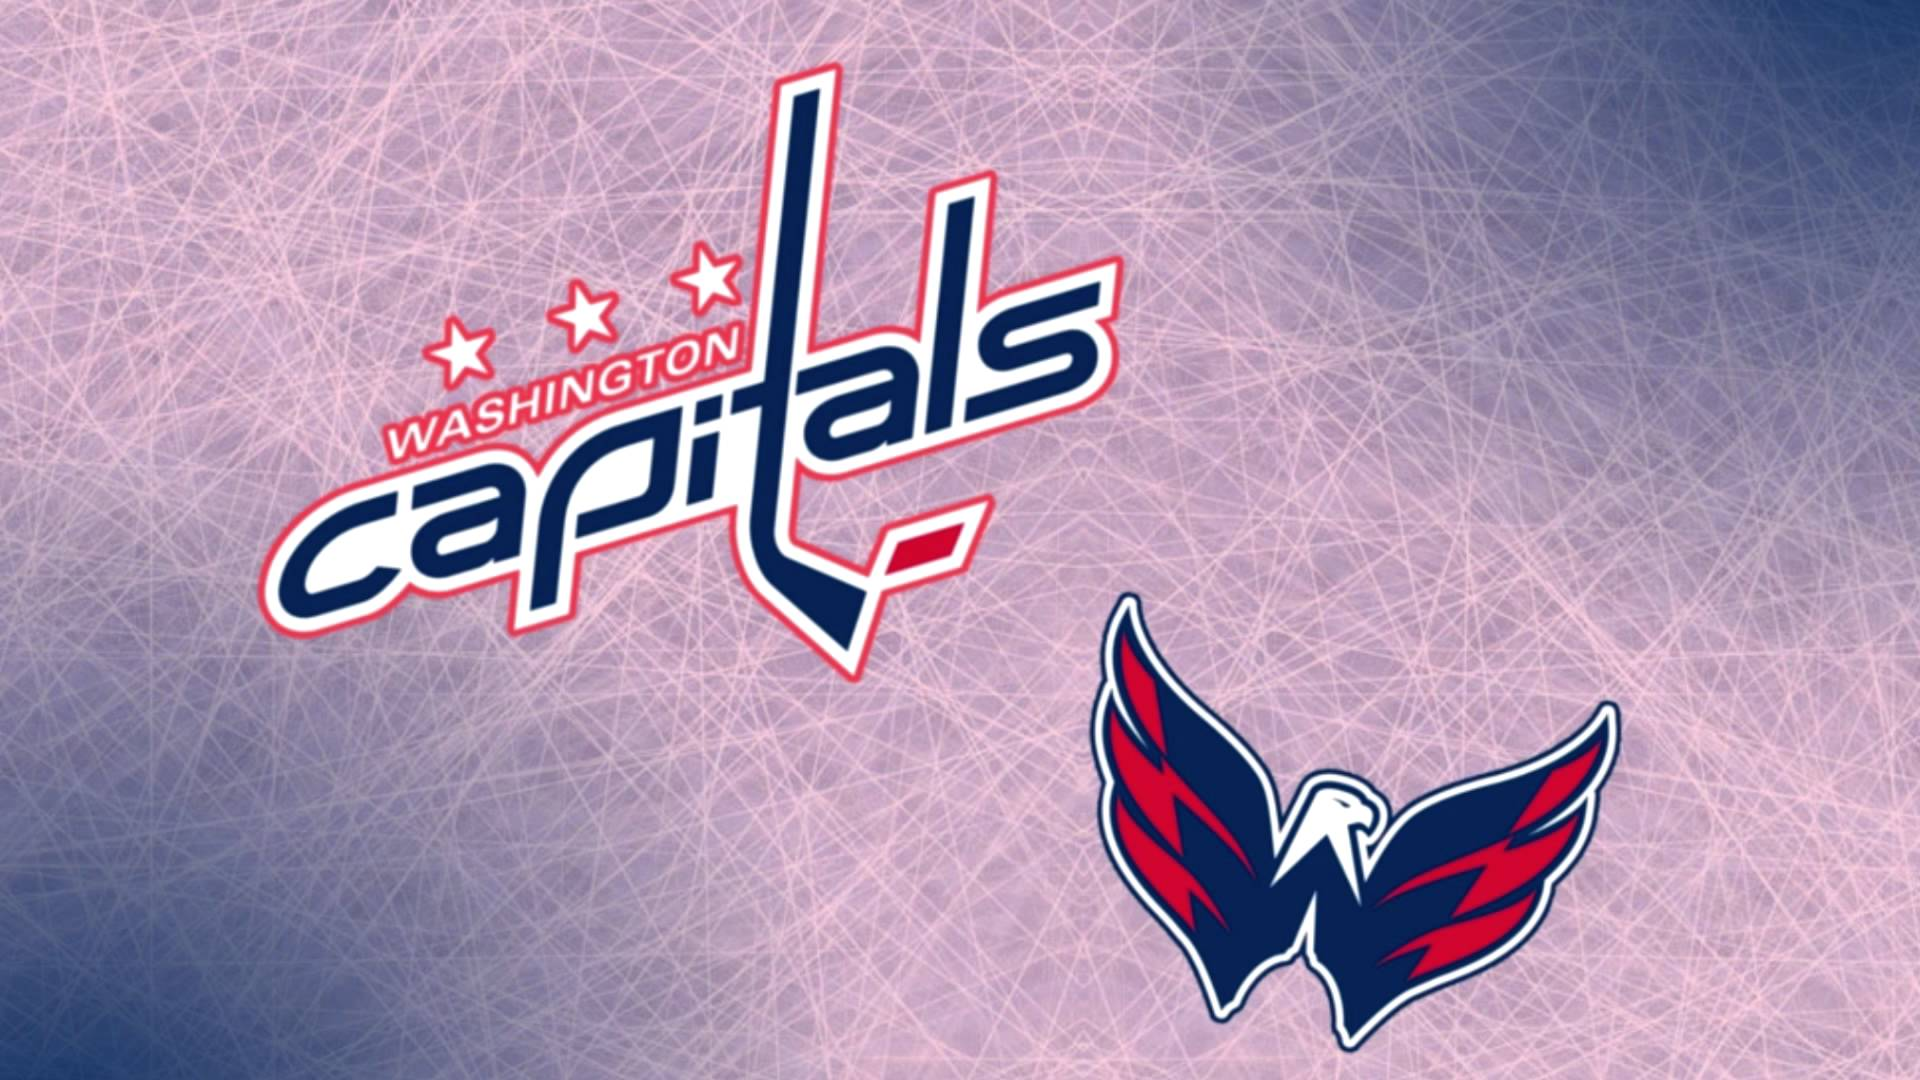 Washington Capitals 2013 Goal Horn 1920x1080